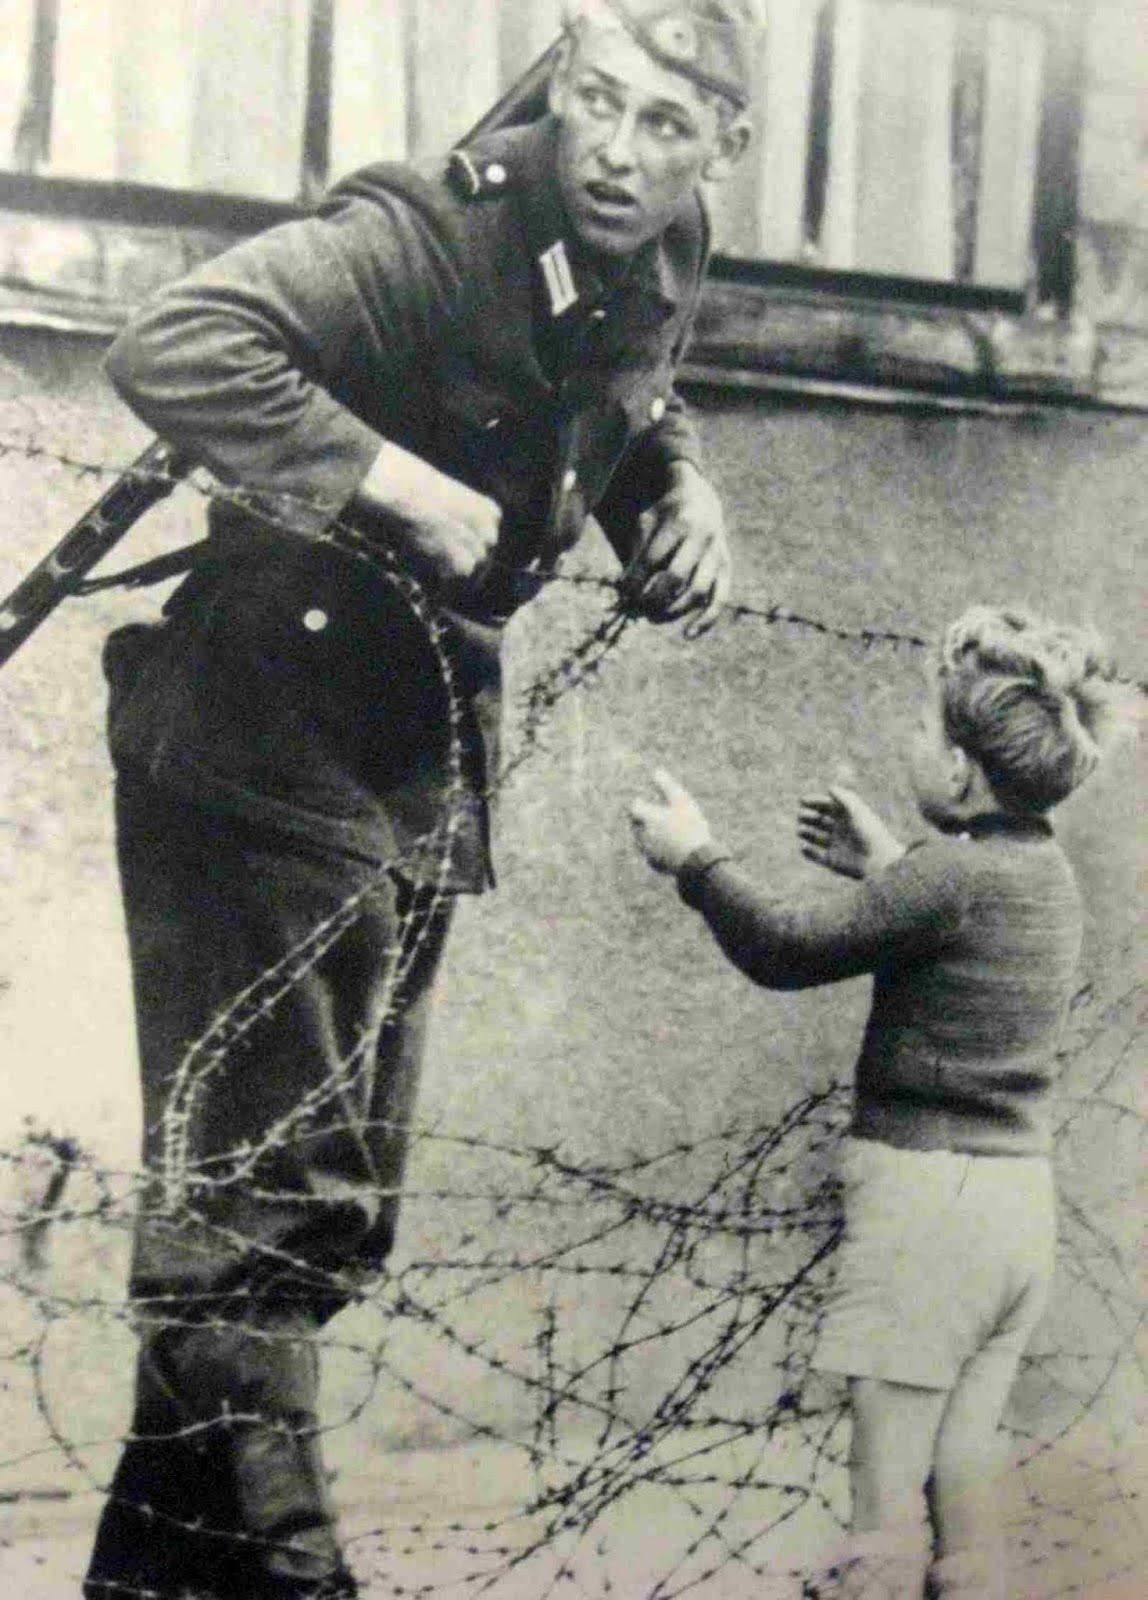 East German soldier helps a little boy sneak across the Berlin Wall, August 13, 1961.